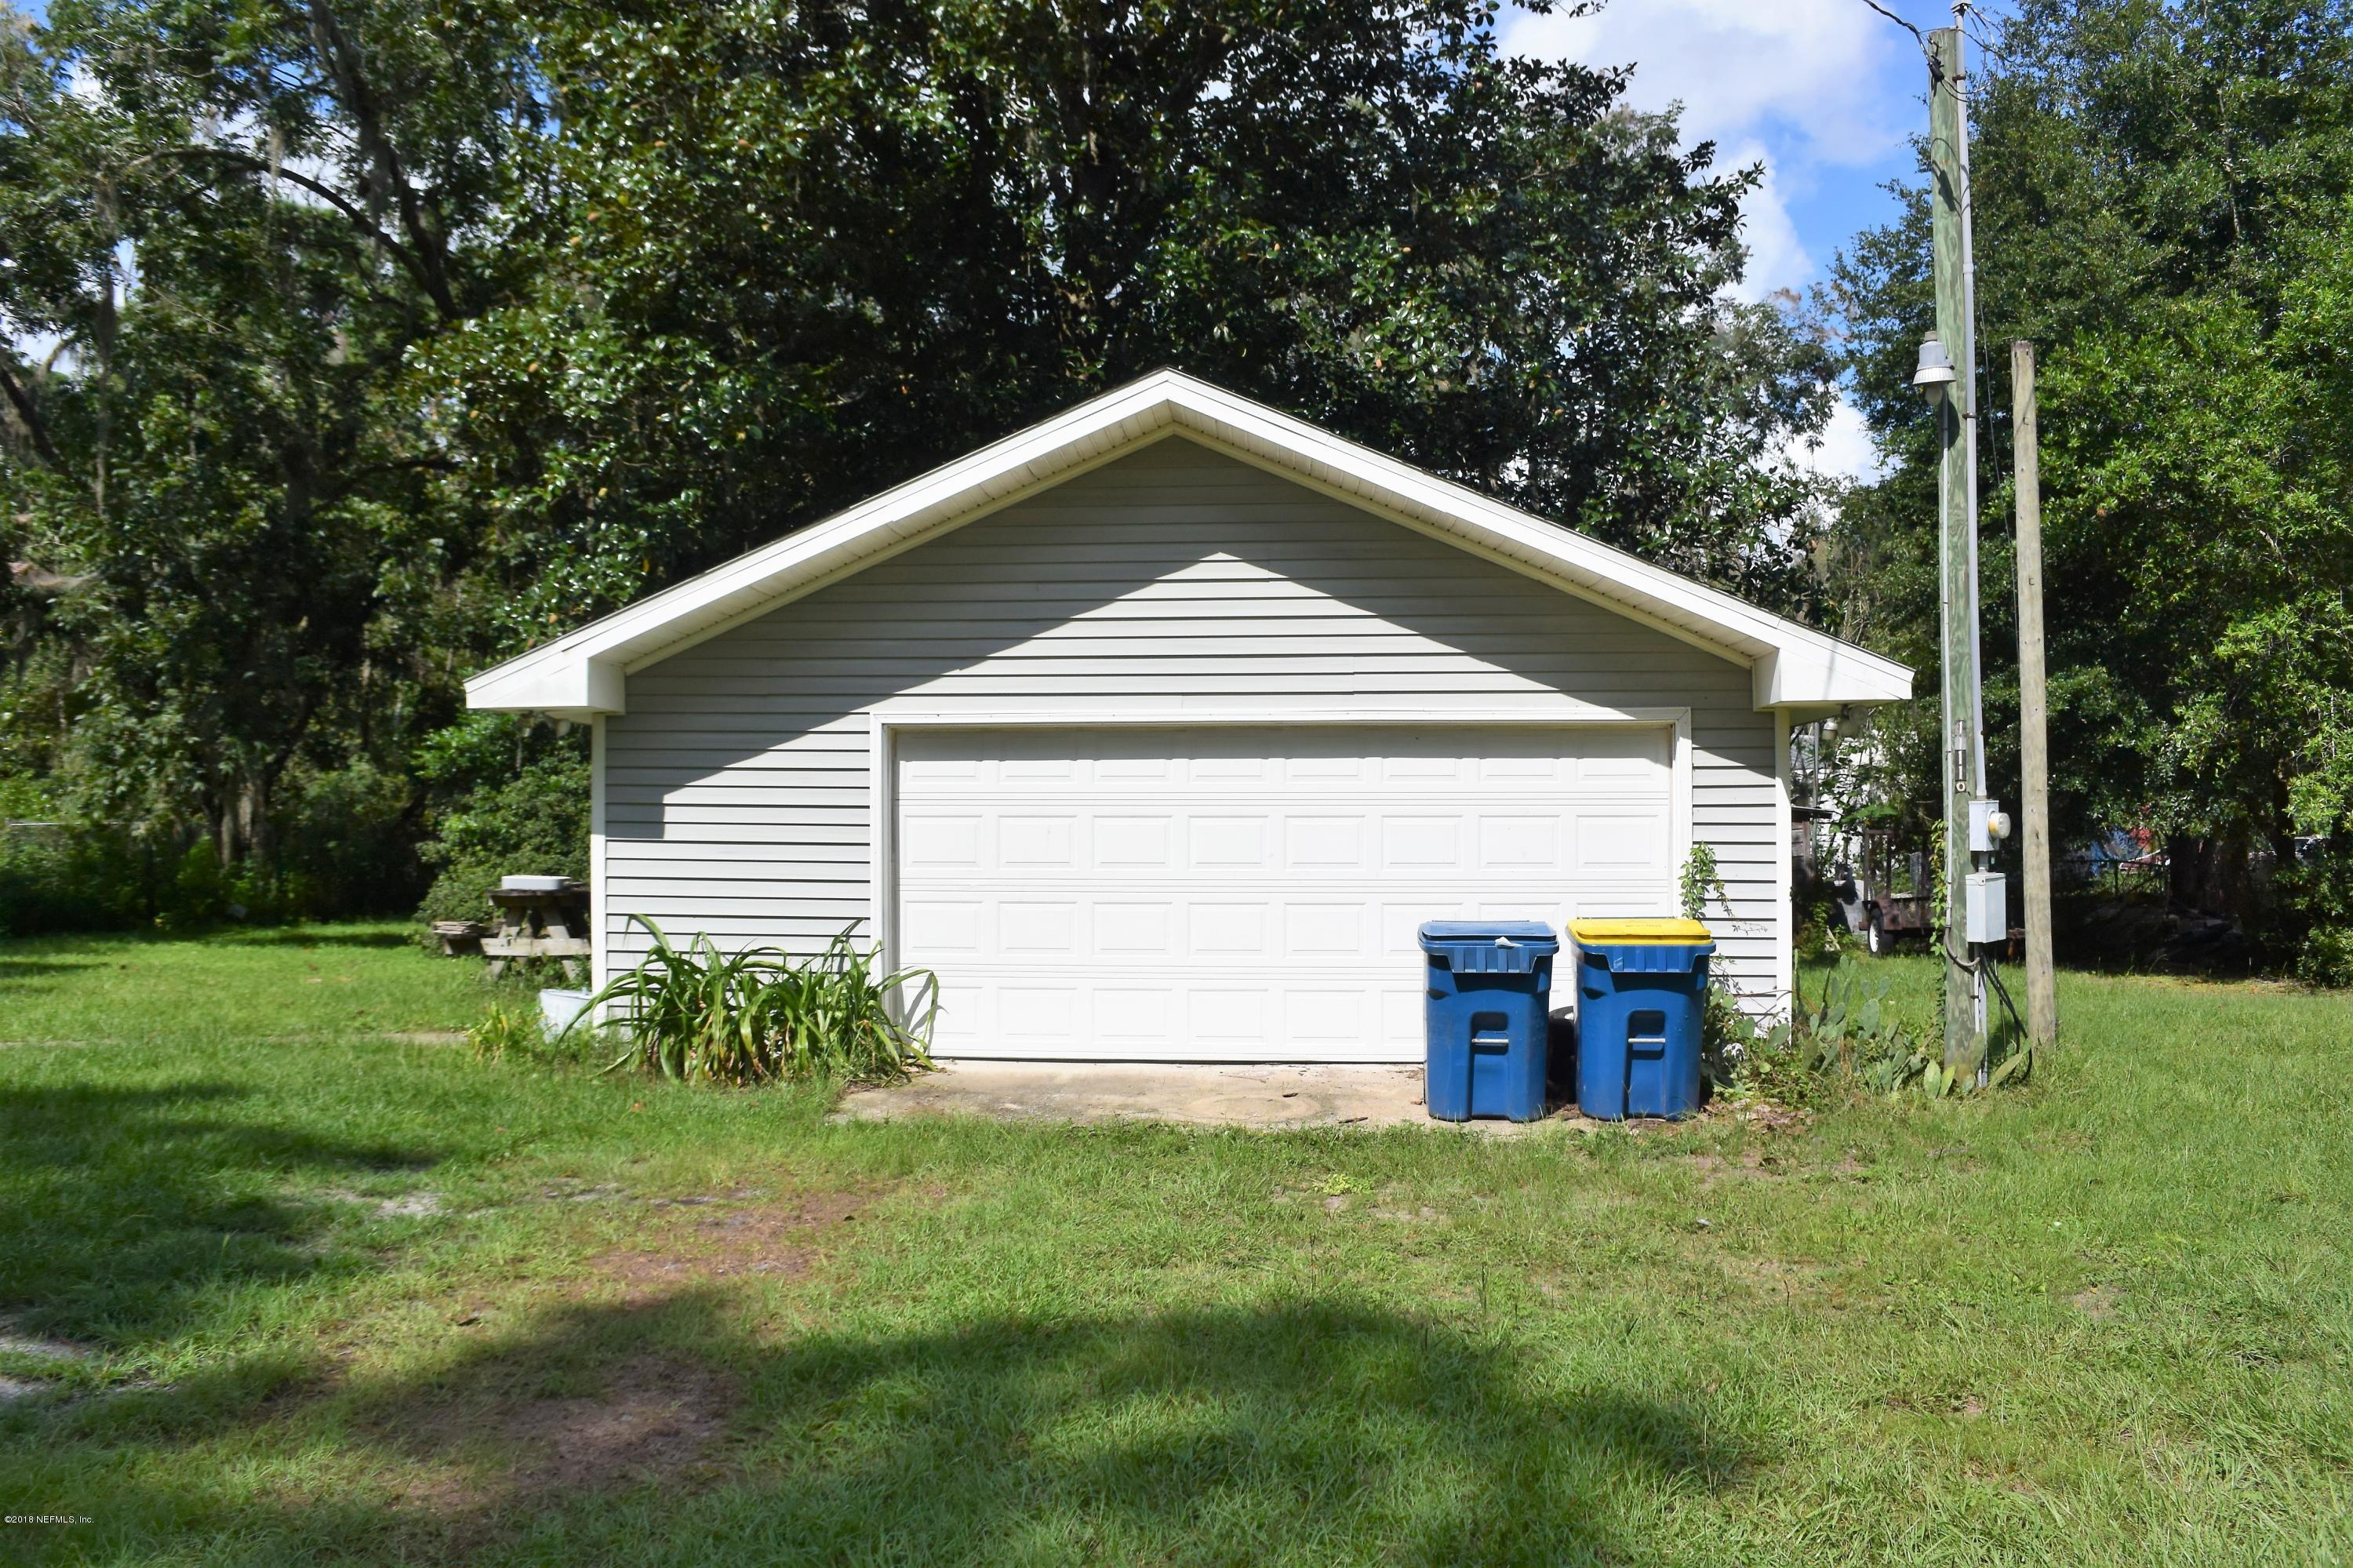 11114 PINE ESTATES, JACKSONVILLE, FLORIDA 32218, 7 Bedrooms Bedrooms, ,3 BathroomsBathrooms,Multi family,For sale,PINE ESTATES,952272